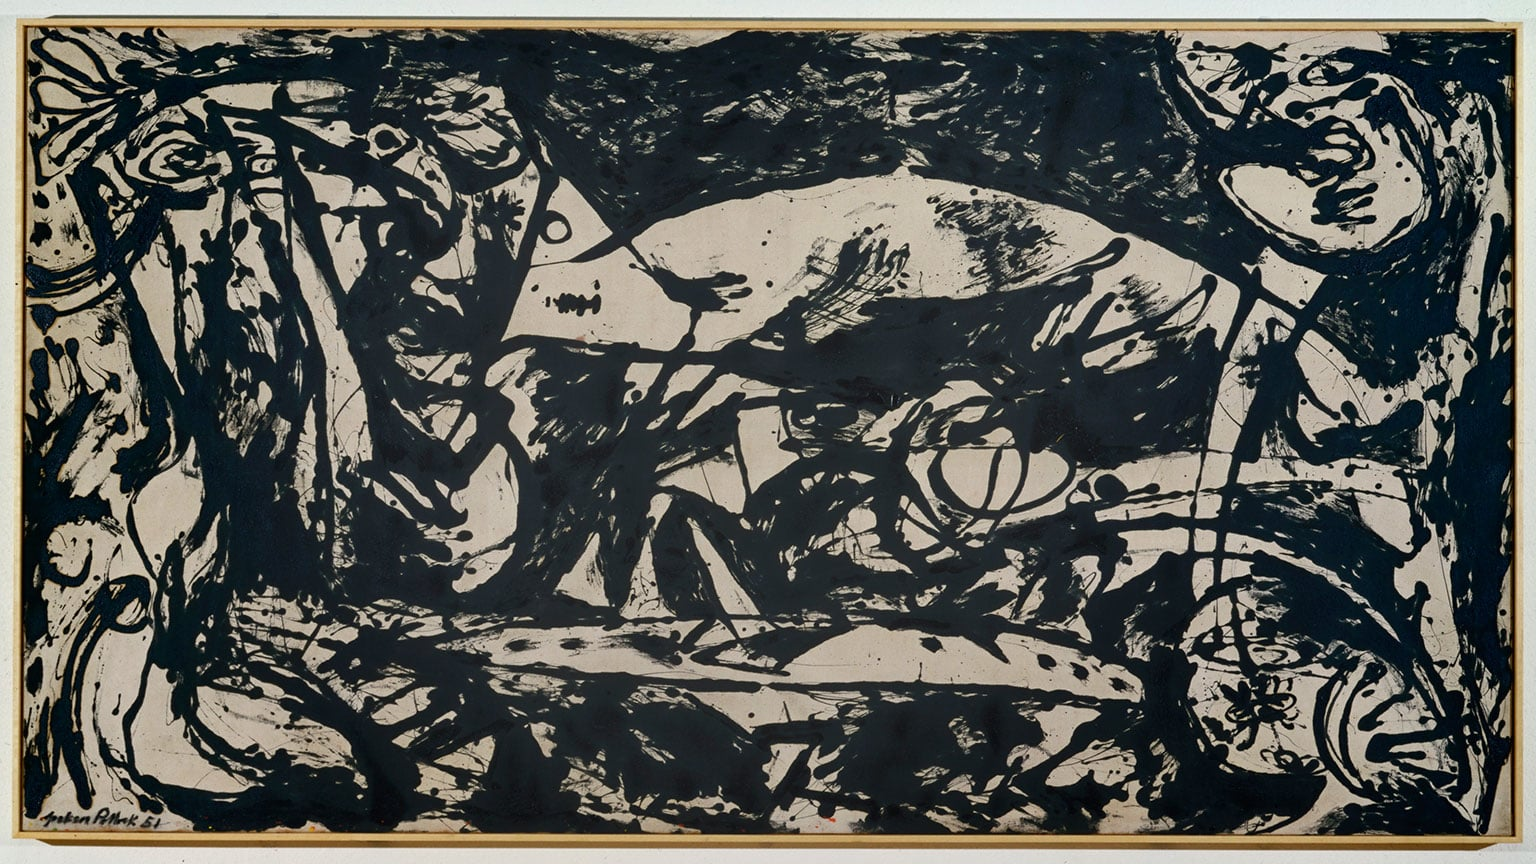 1. Jackson Pollock: Blind Spots, Tate Liverpool, 50% off with National Art Pass - Jackson Pollock, Number 14, 1951 © The Pollock-Krasner Foundation ARS, NY and DACS, London 2015